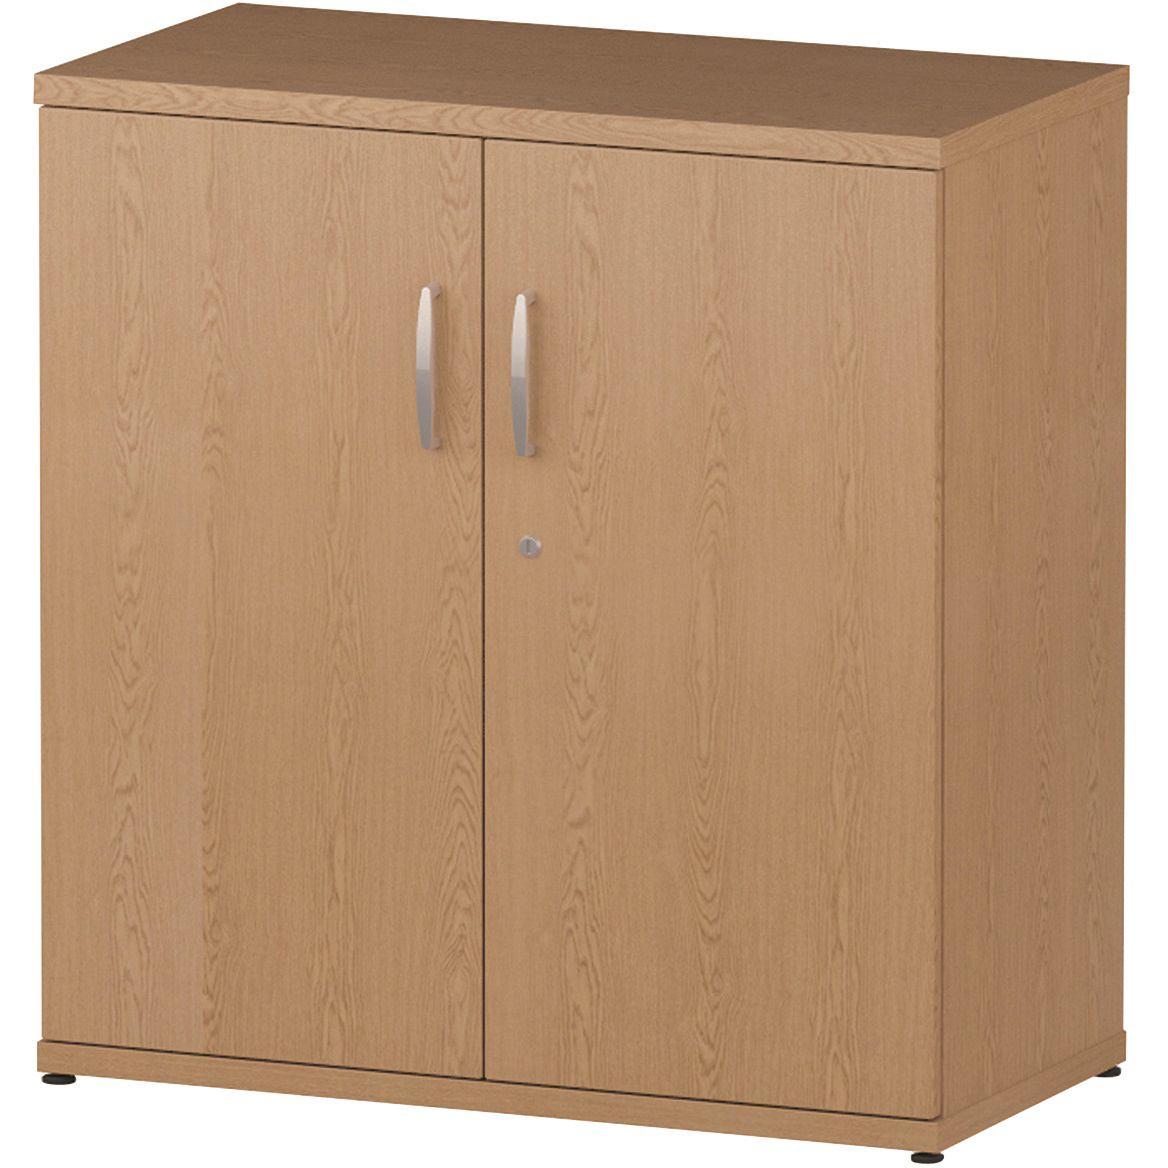 Trexus Office Low Cupboard 800x400x800mm 1 Shelves Oak Ref I000904